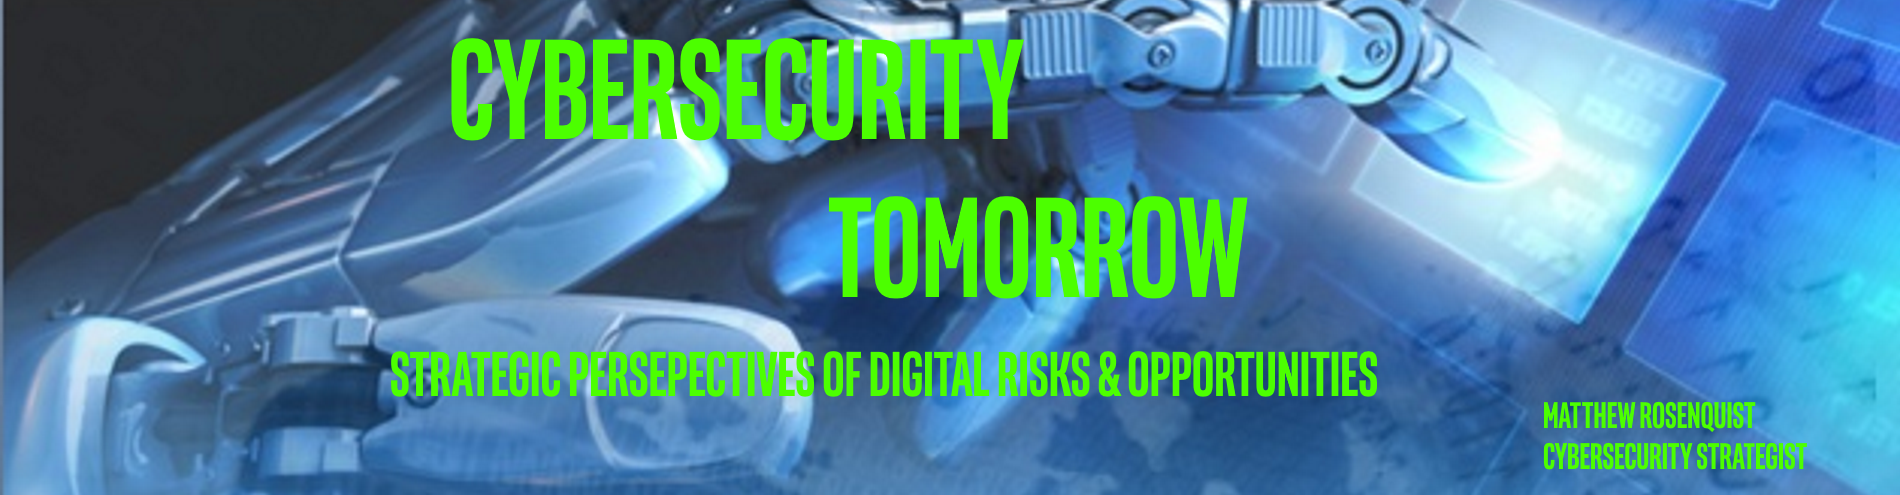 Cybersecurity Tomorrow